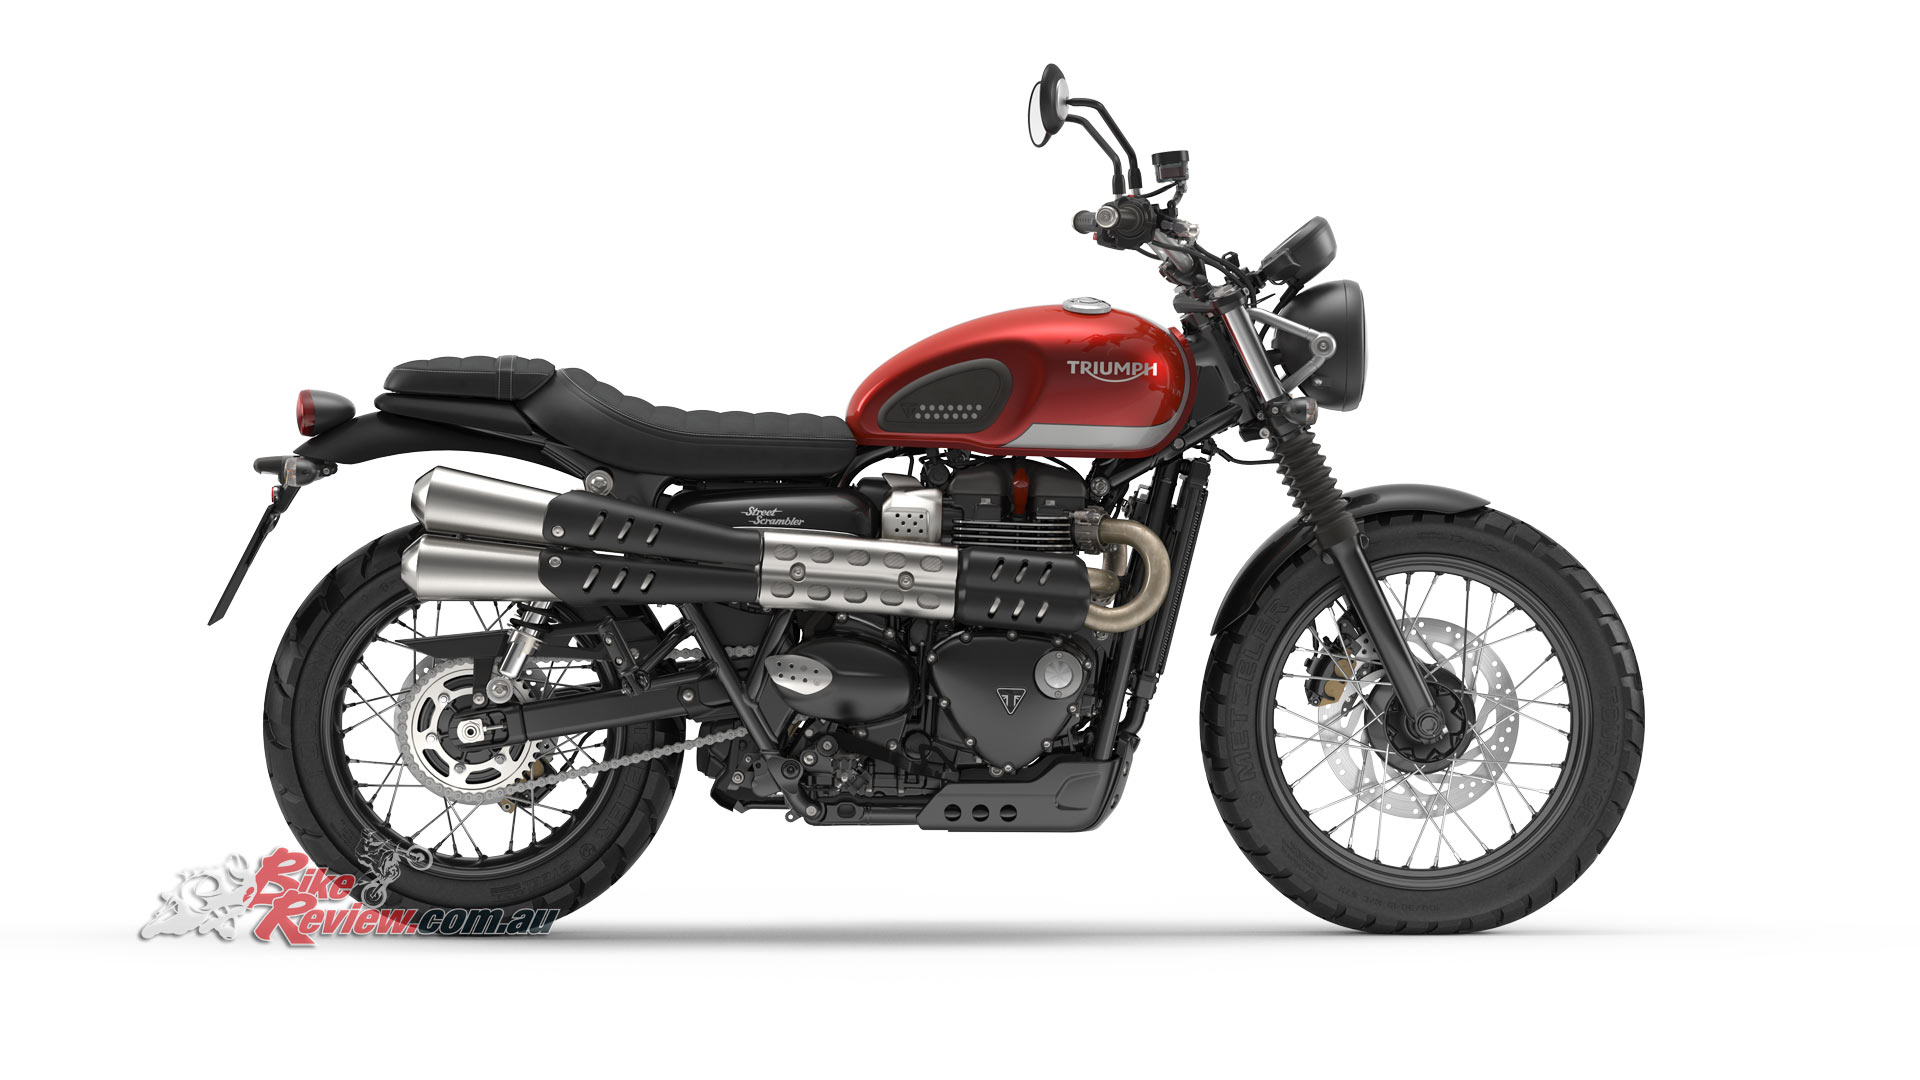 2017 triumph street scrambler revealed bike review. Black Bedroom Furniture Sets. Home Design Ideas